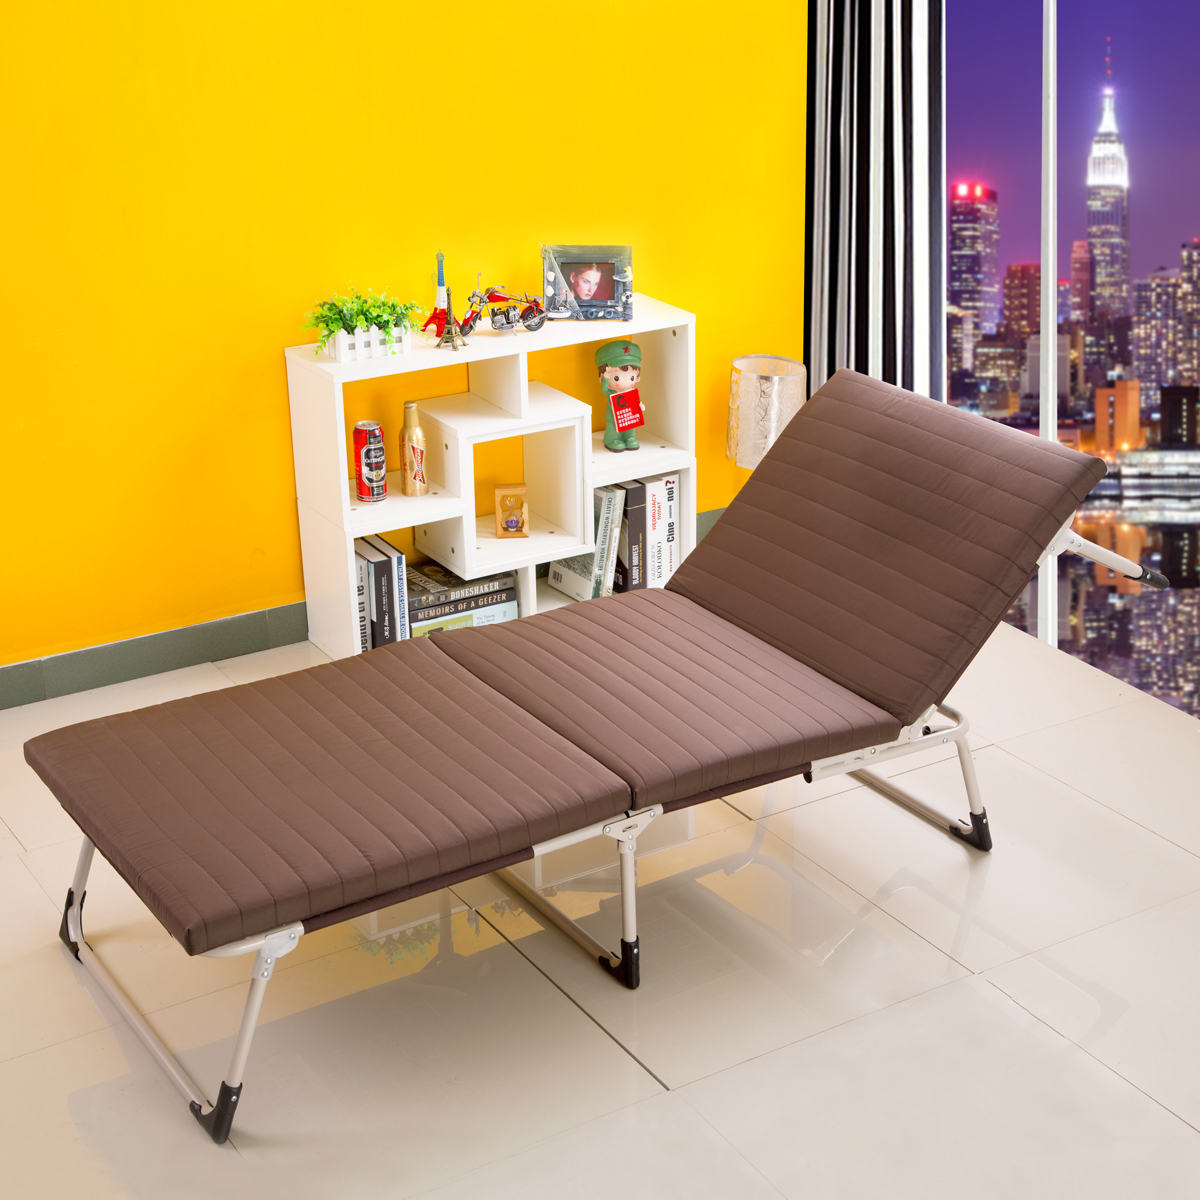 high quality soft comfortable folding single bed sponge simple office nap bed nursing bedchina - Cheap Single Bed Frames